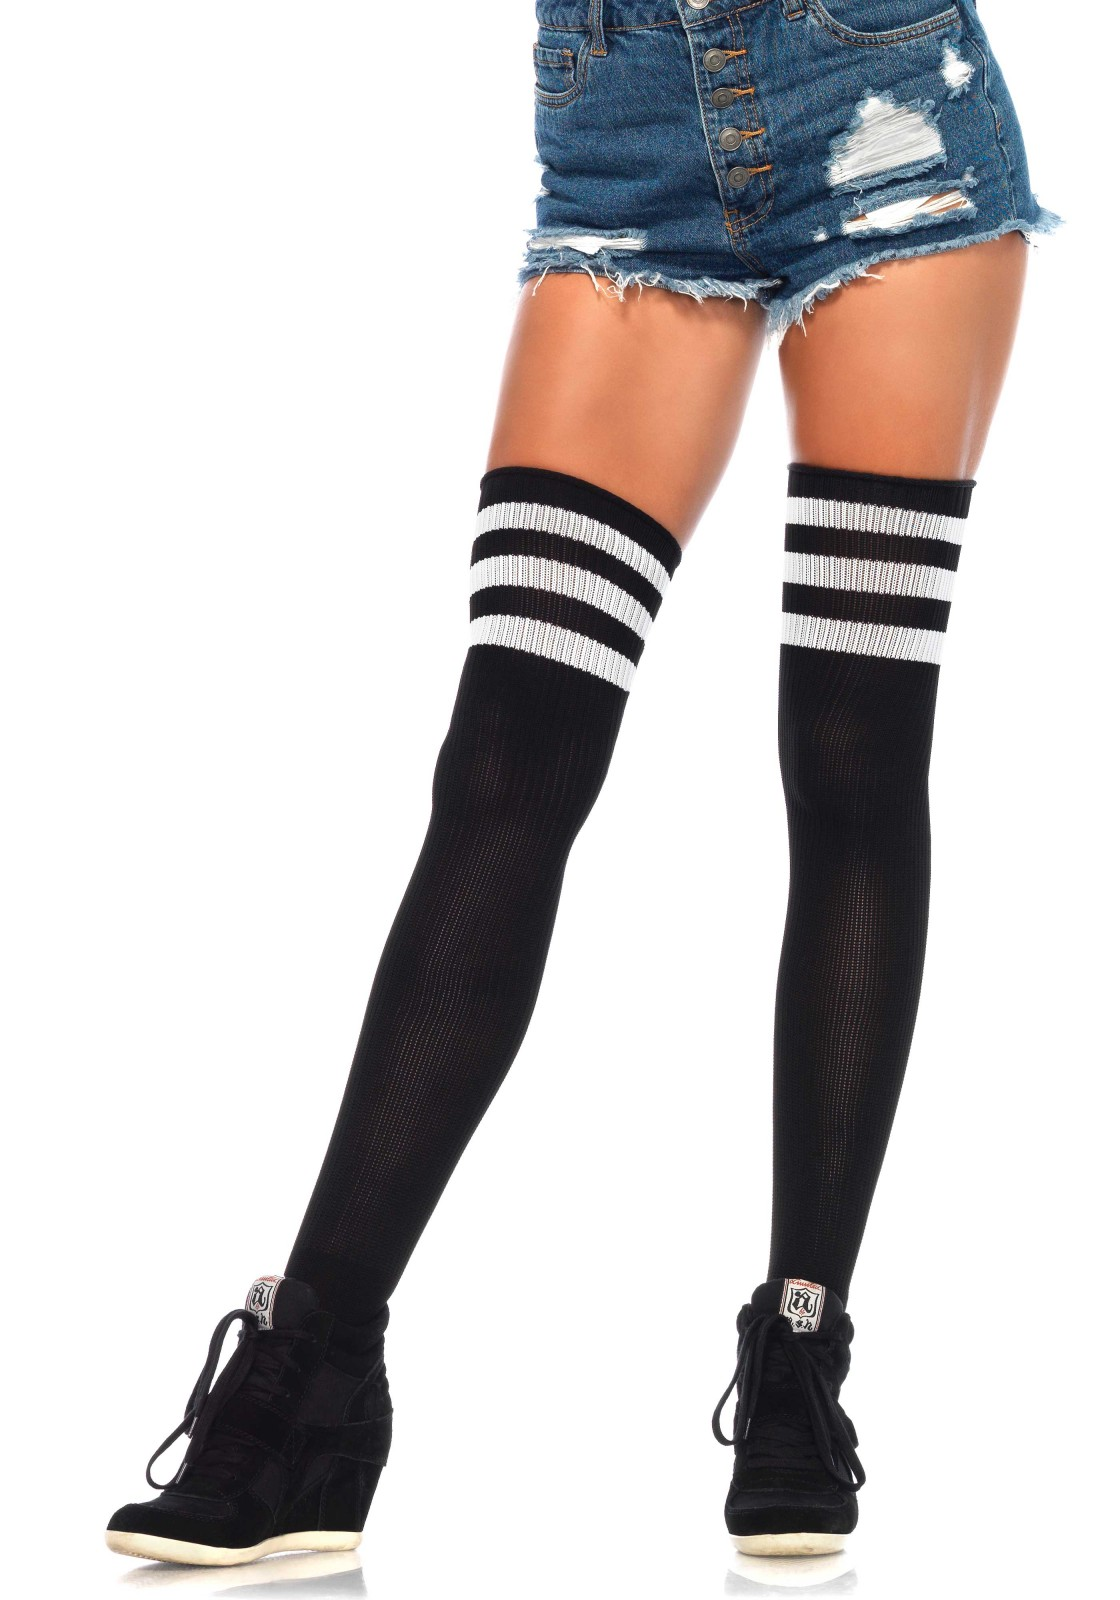 Athlete Thigh Highs With 3 Stripe Top